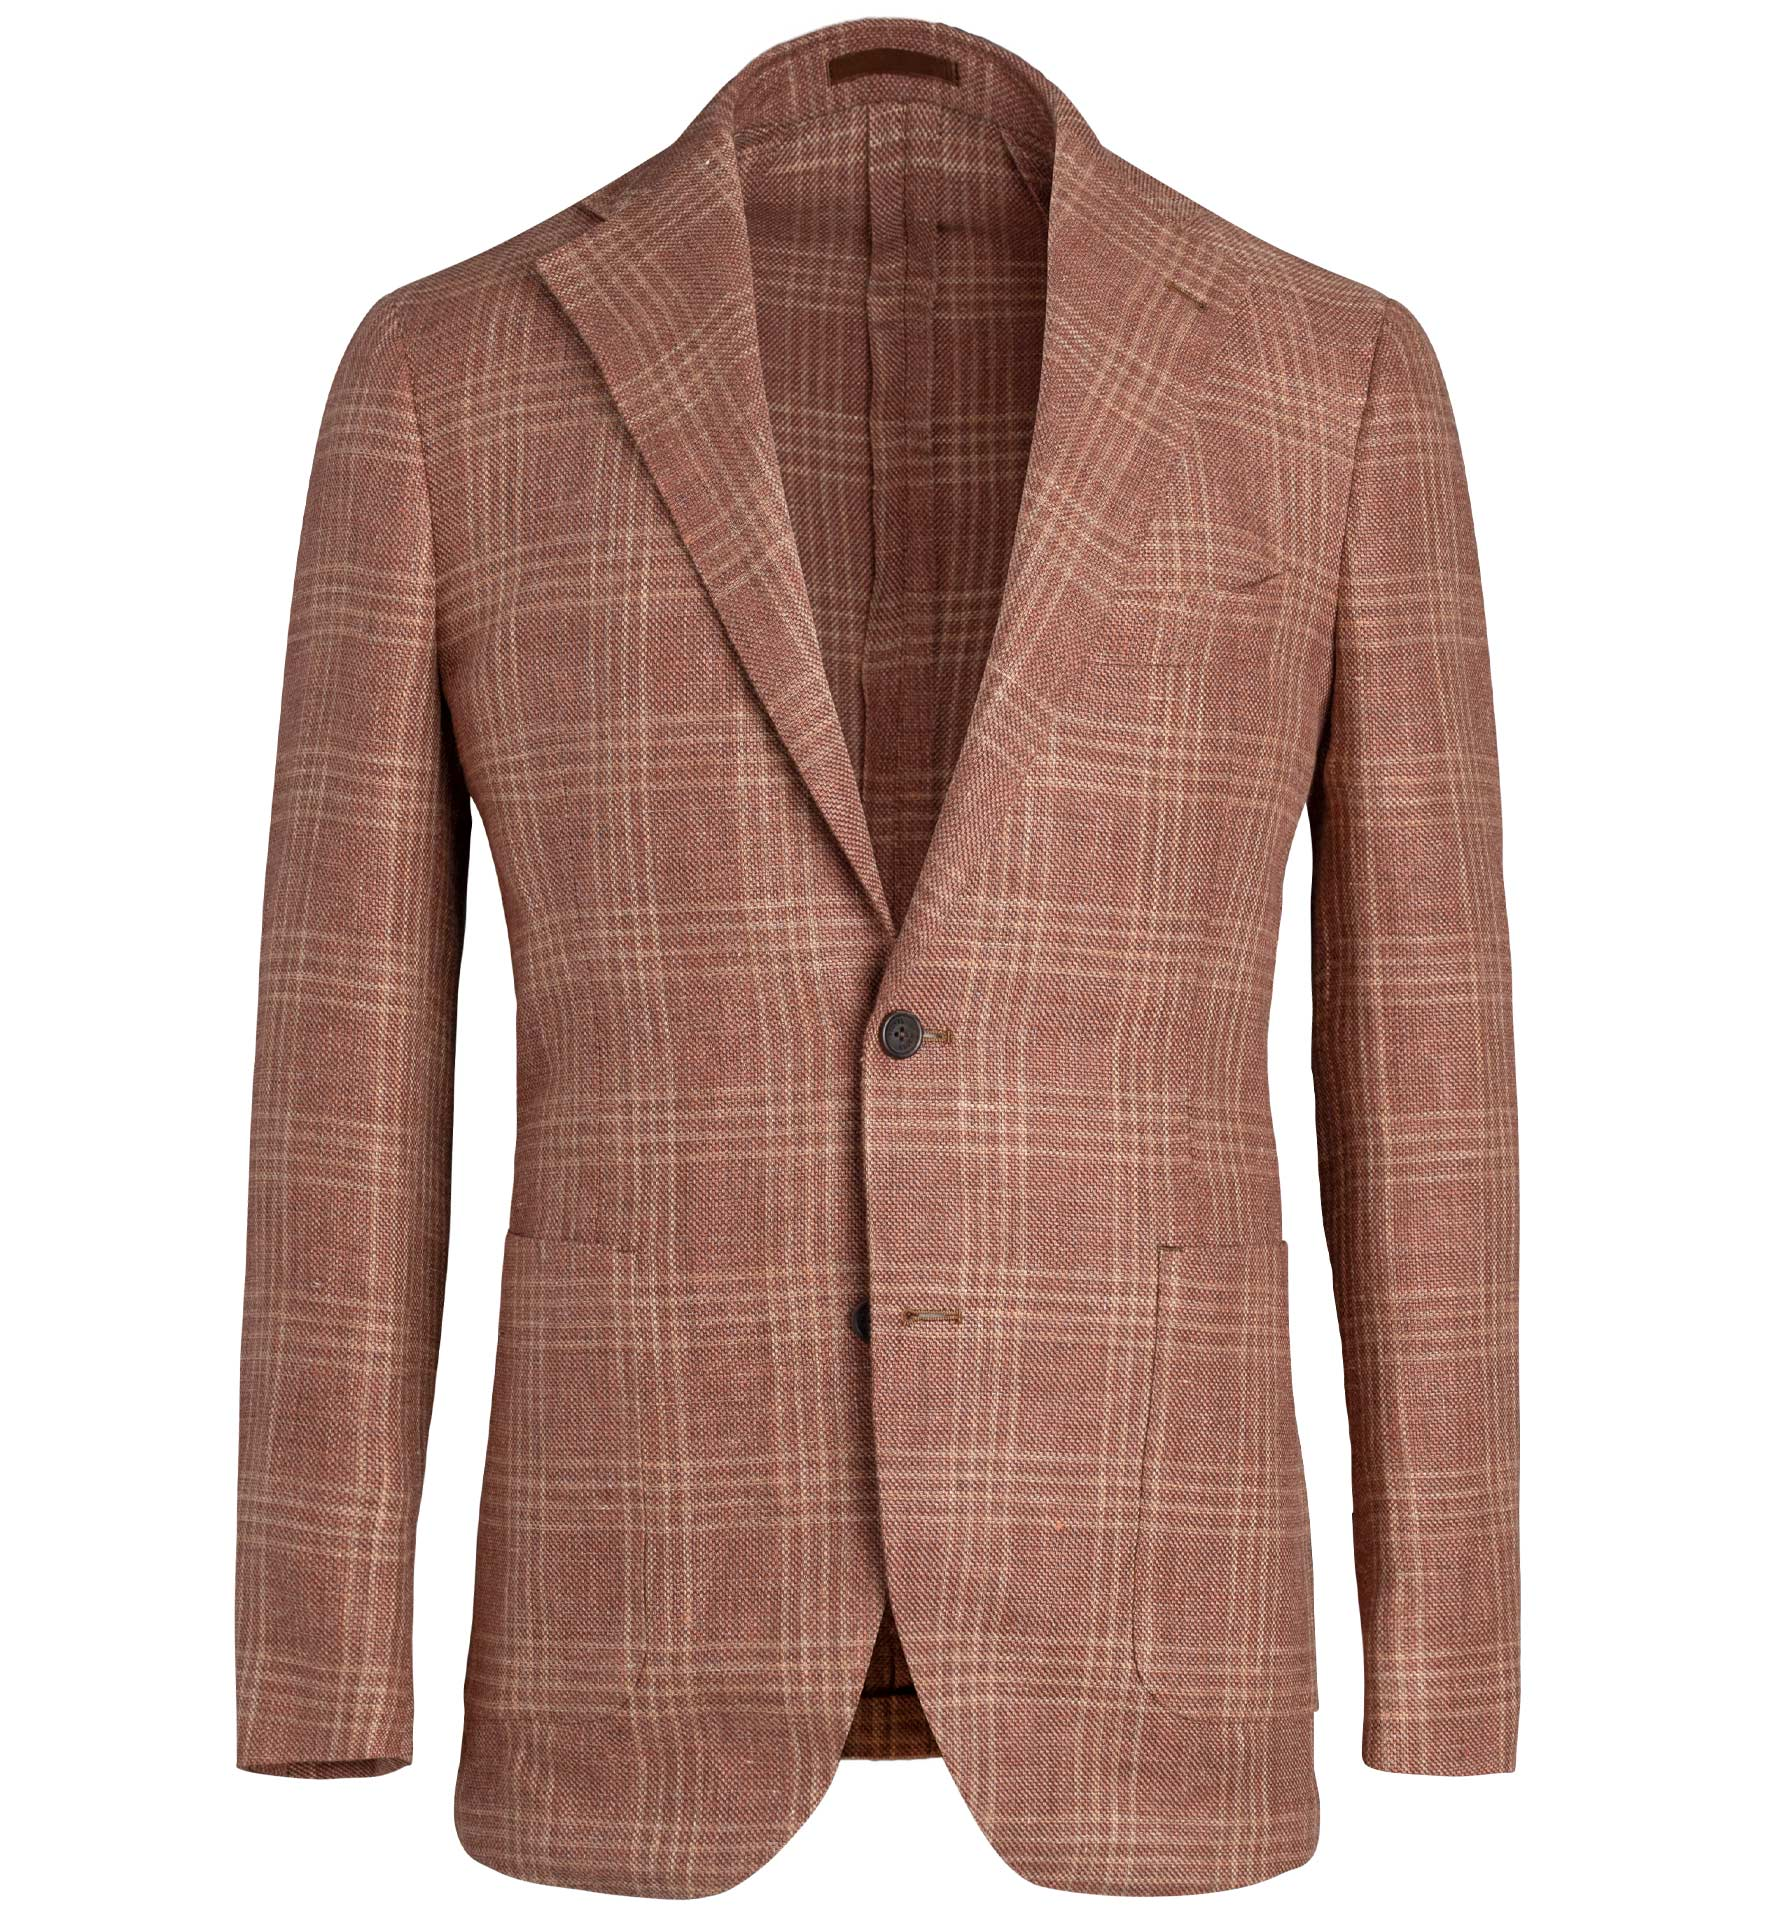 Zoom Image of Bedford Sienna Plaid Linen and Wool Hopsack Jacket